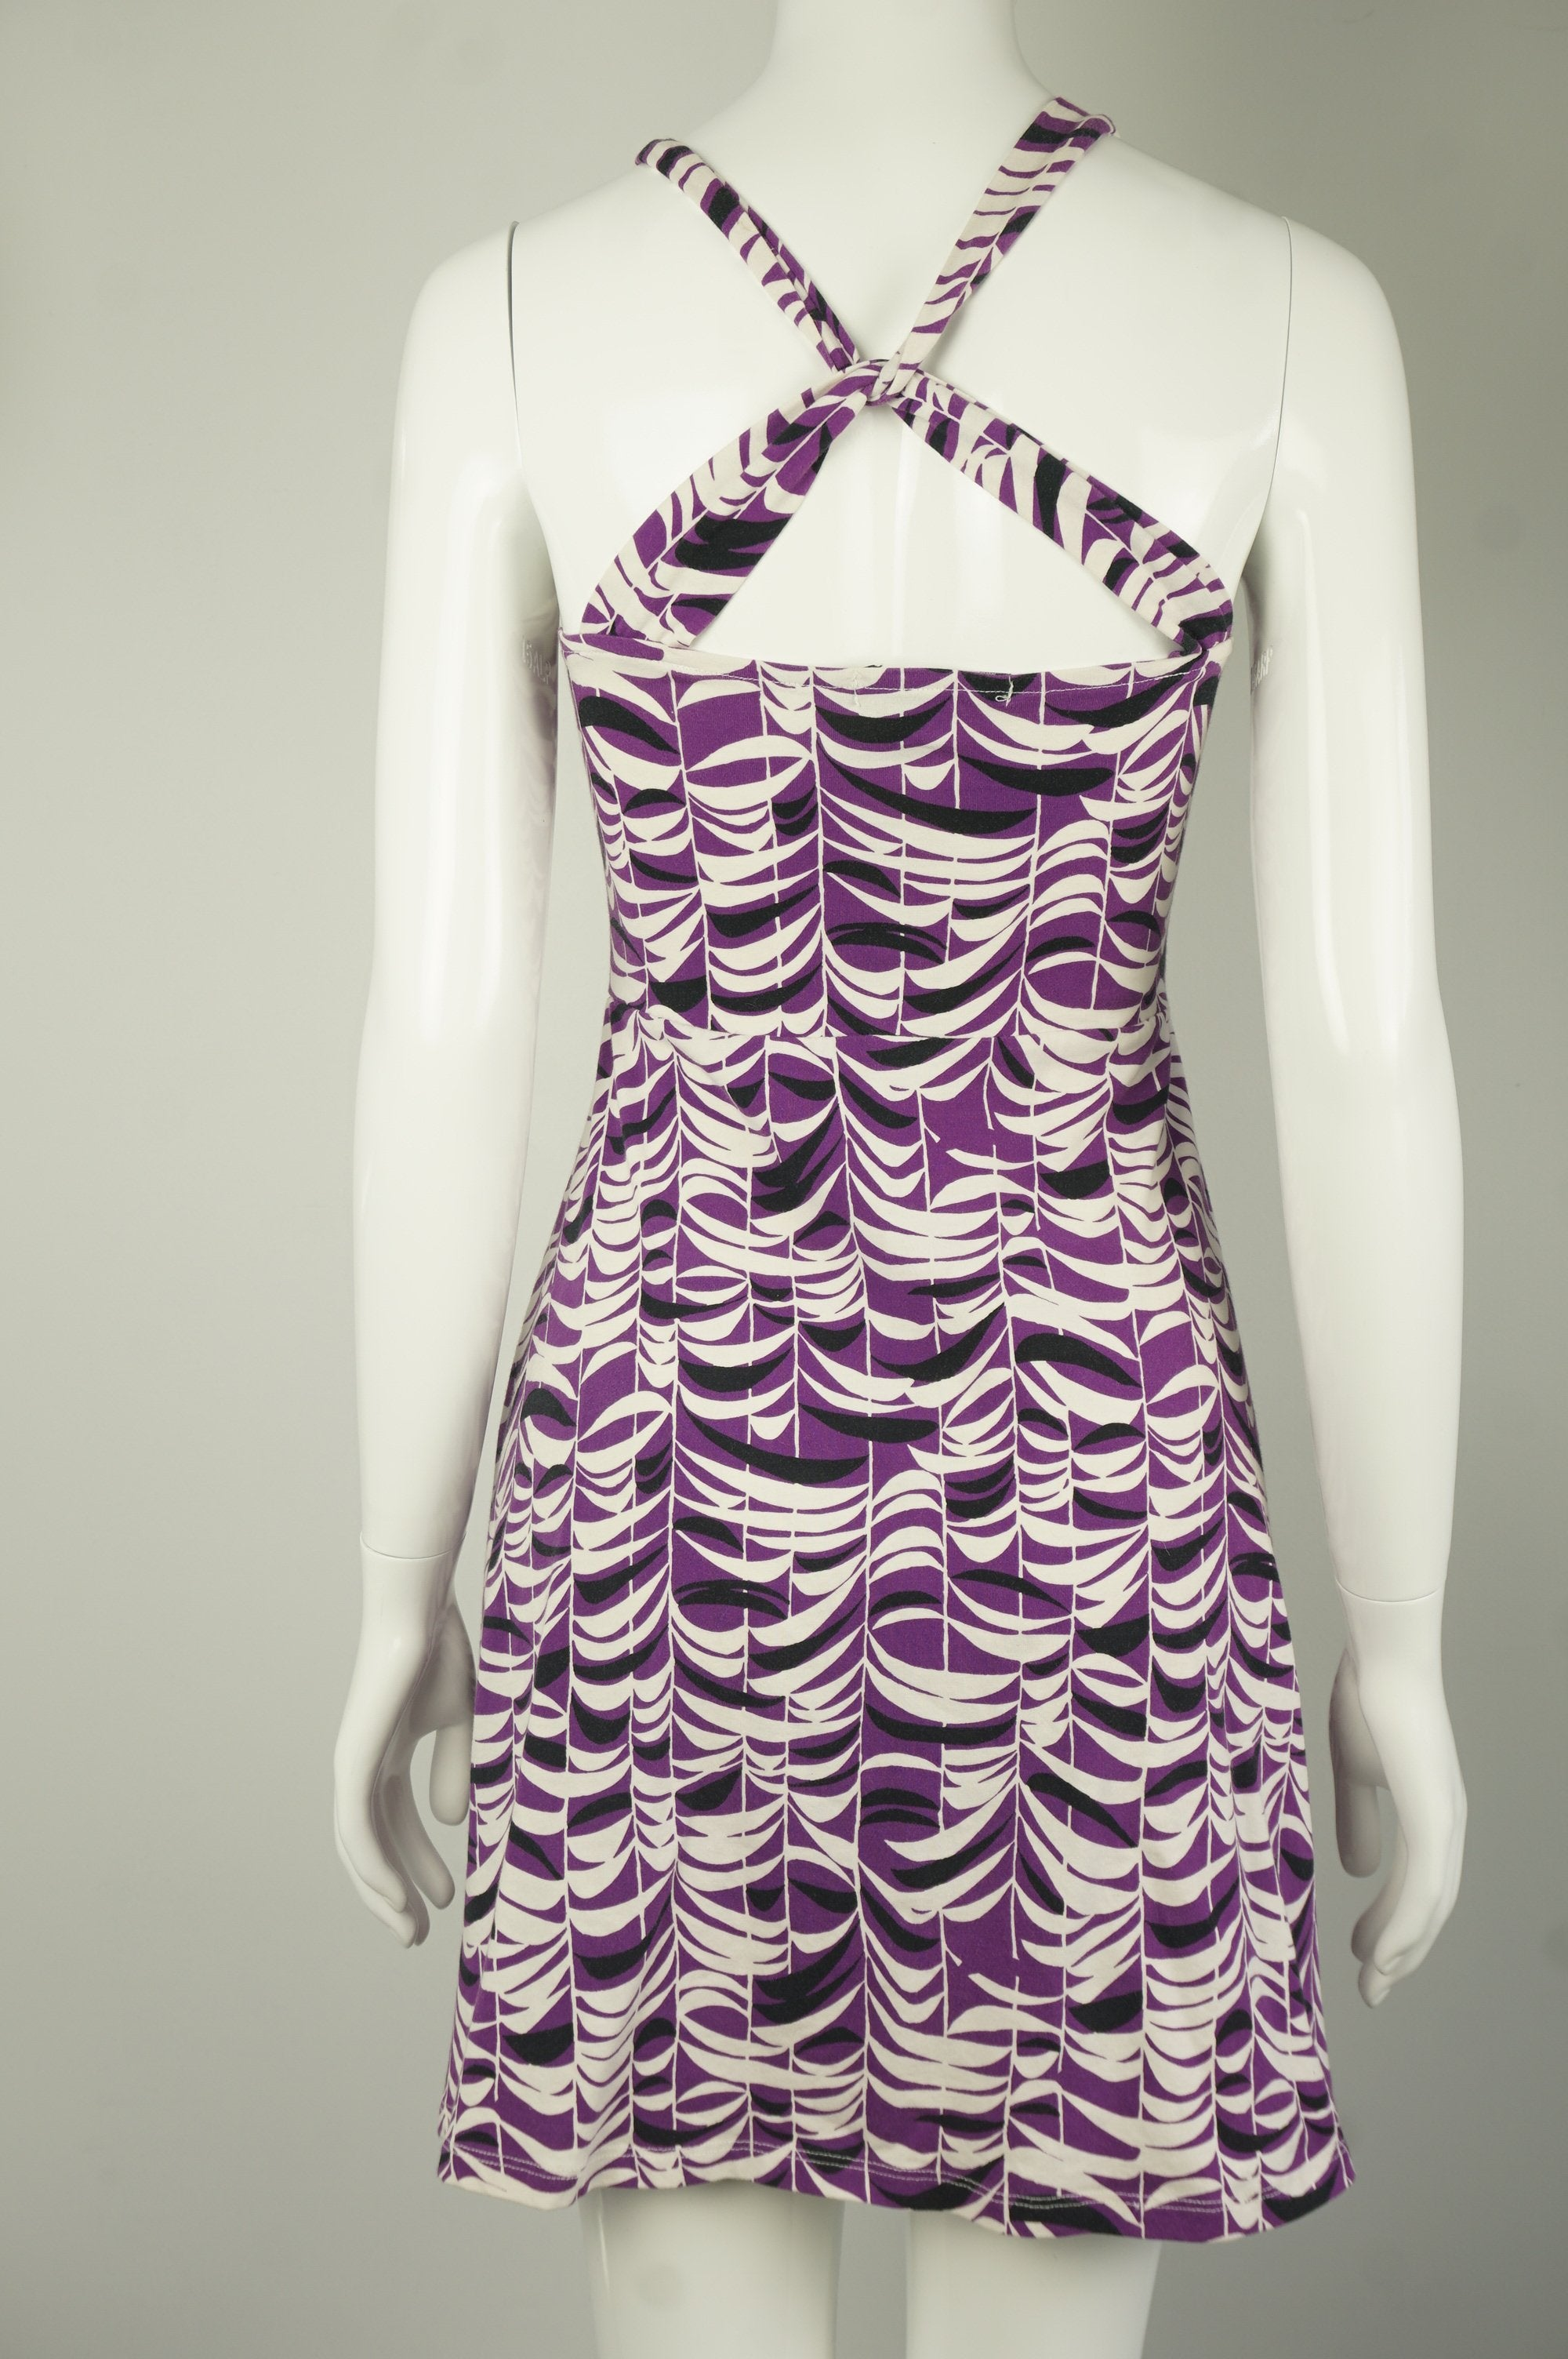 Forever 21 Cute Purple Zebra Print Flared Dress with Crossed Strap Back, Comfortable, stretchy, yet elegant, this flared dress with crossed strap will help you radiate in a special feminine charm. , Purple, White, 2 way stretch fabric, women's Dresses & Skirts, women's Purple, White Dresses & Skirts, Forever 21 women's Dresses & Skirts, Purple leaf patterns mini dress, dresses for outdoor events, party dresses, stretchy and body-cut flared dress